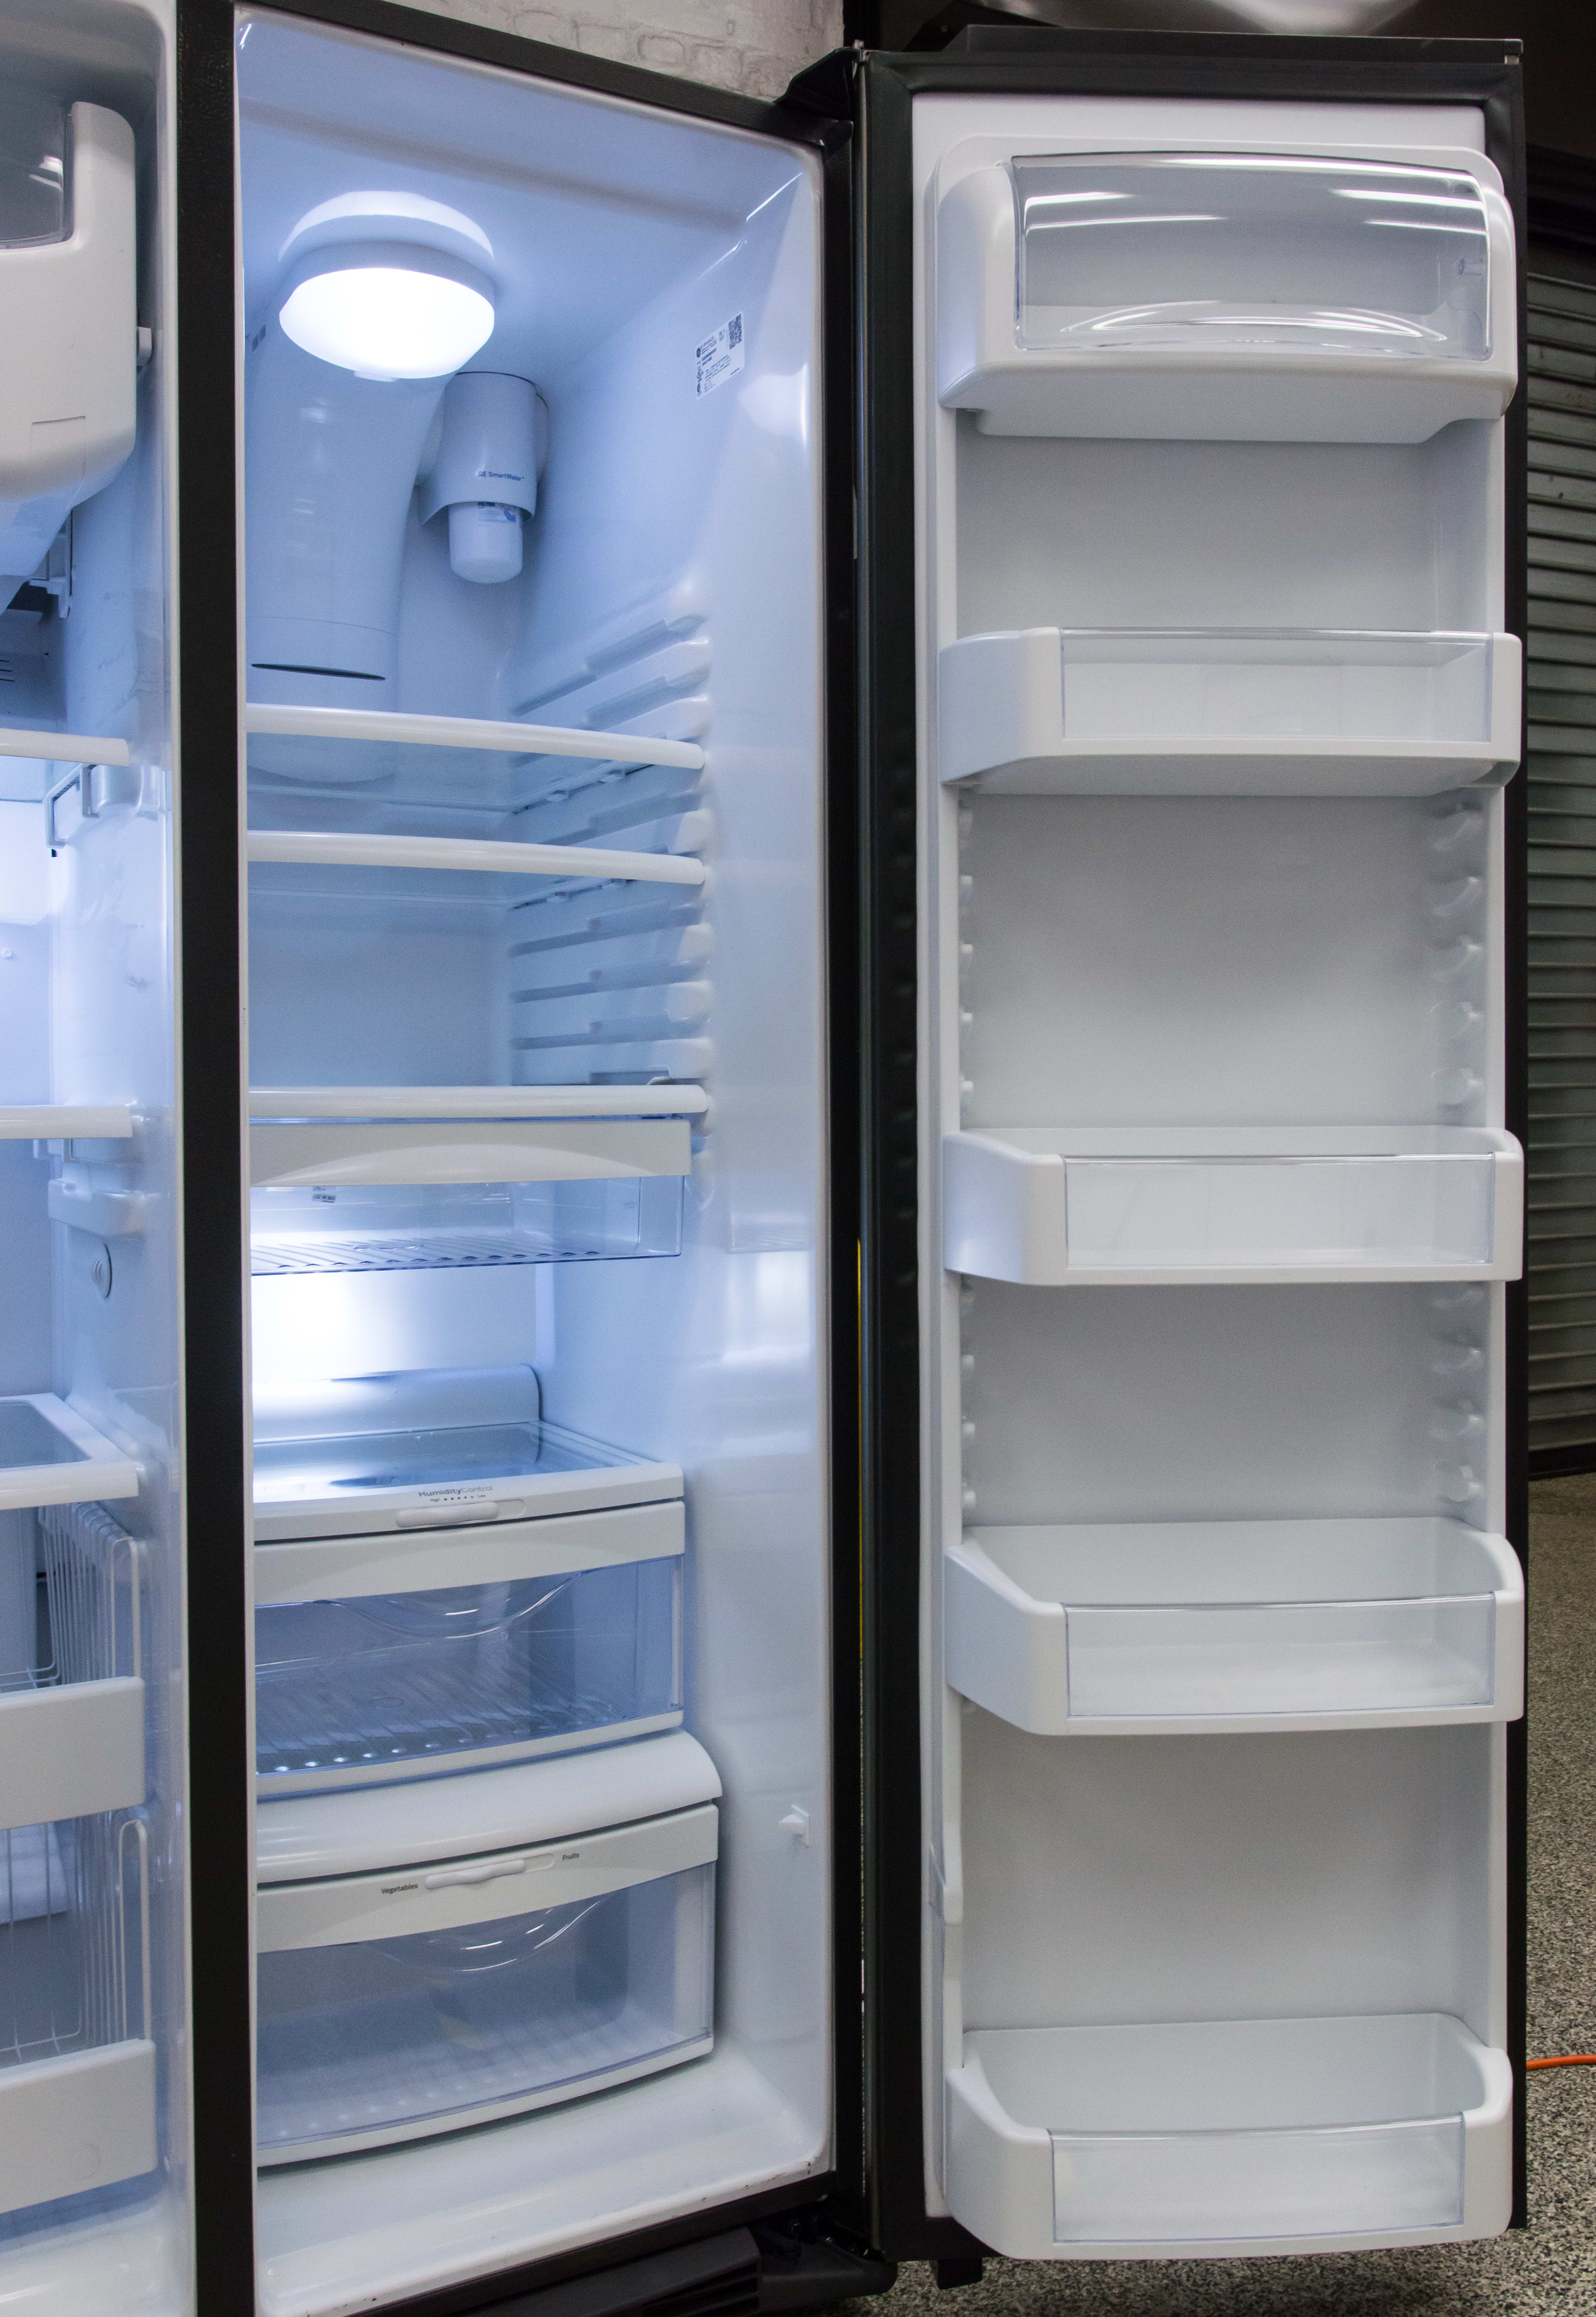 Gallon milk and juice containers fit nicely into the door, and you can move the shelves as needed